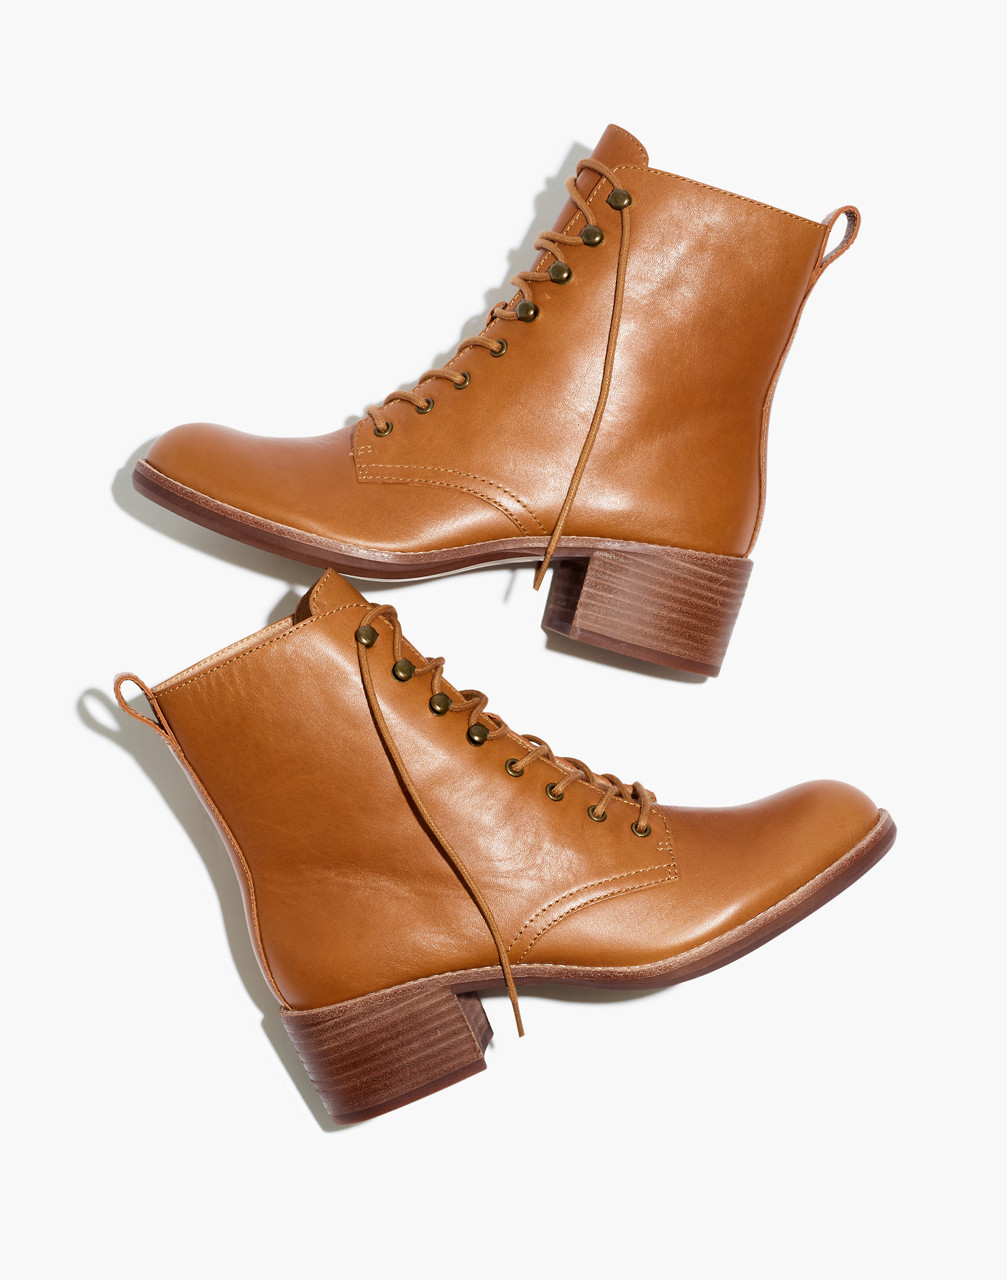 Vintage Boots- Buy Winter Retro Boots The Patti Lace-Up Boot $228.00 AT vintagedancer.com